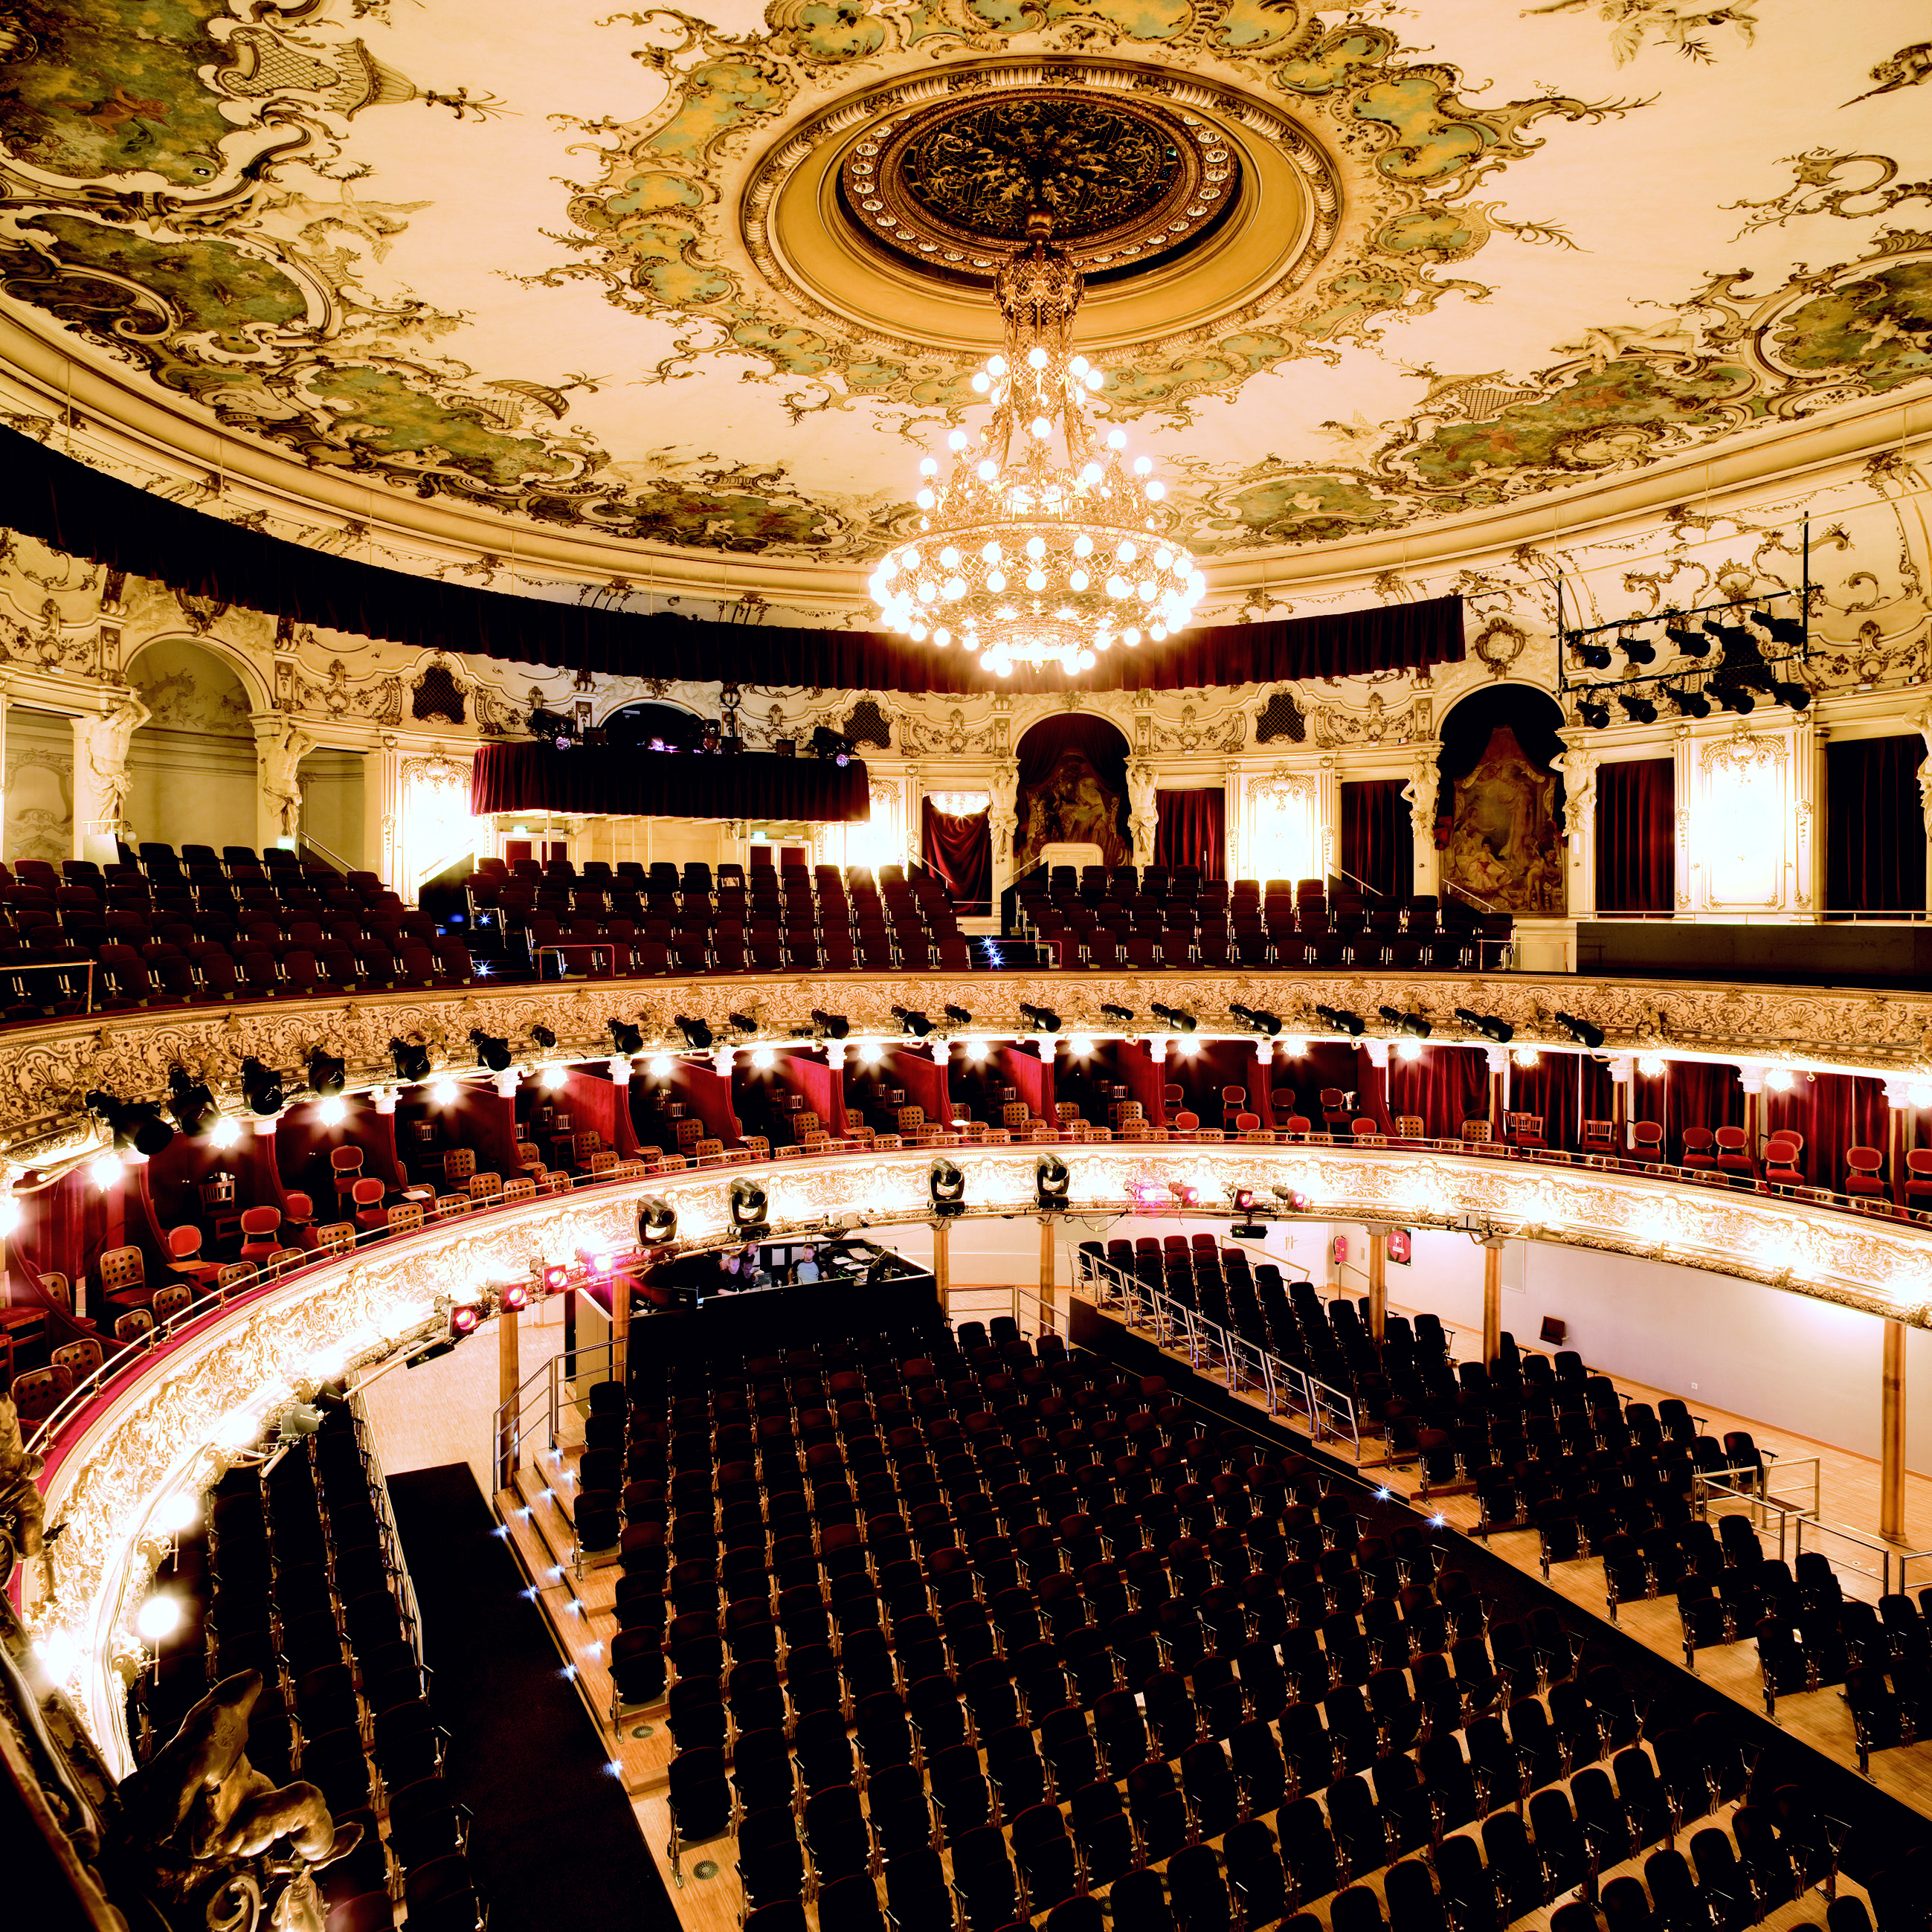 Interior view of the : Ronacher theater (source Wikimedia Commons, photo Paul Ott / VBW).